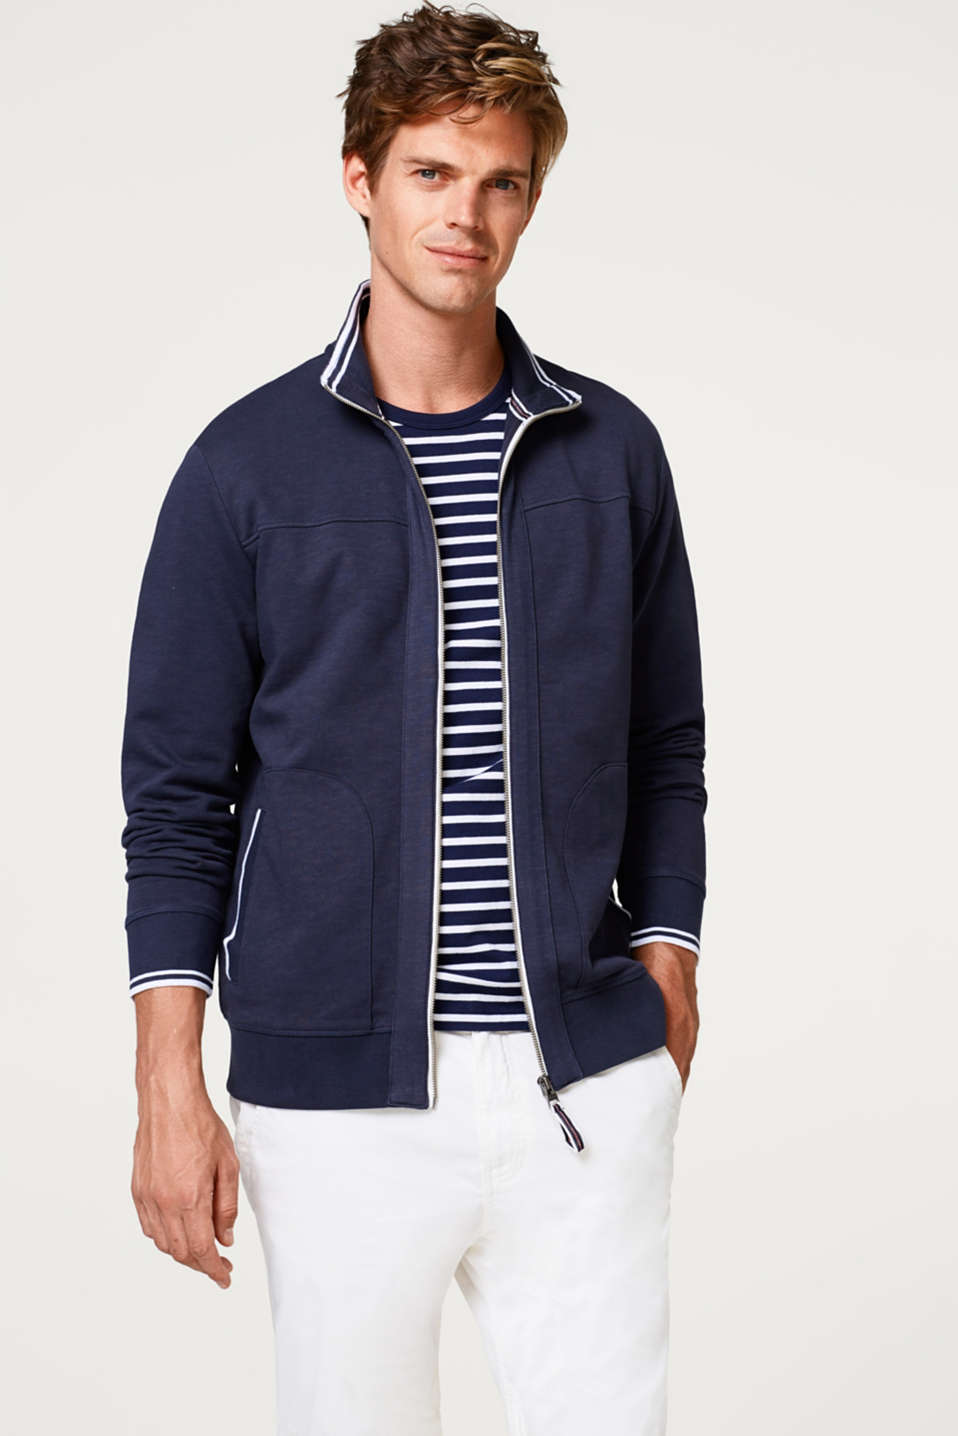 Esprit - Zip-up cardigan made of 100% cotton